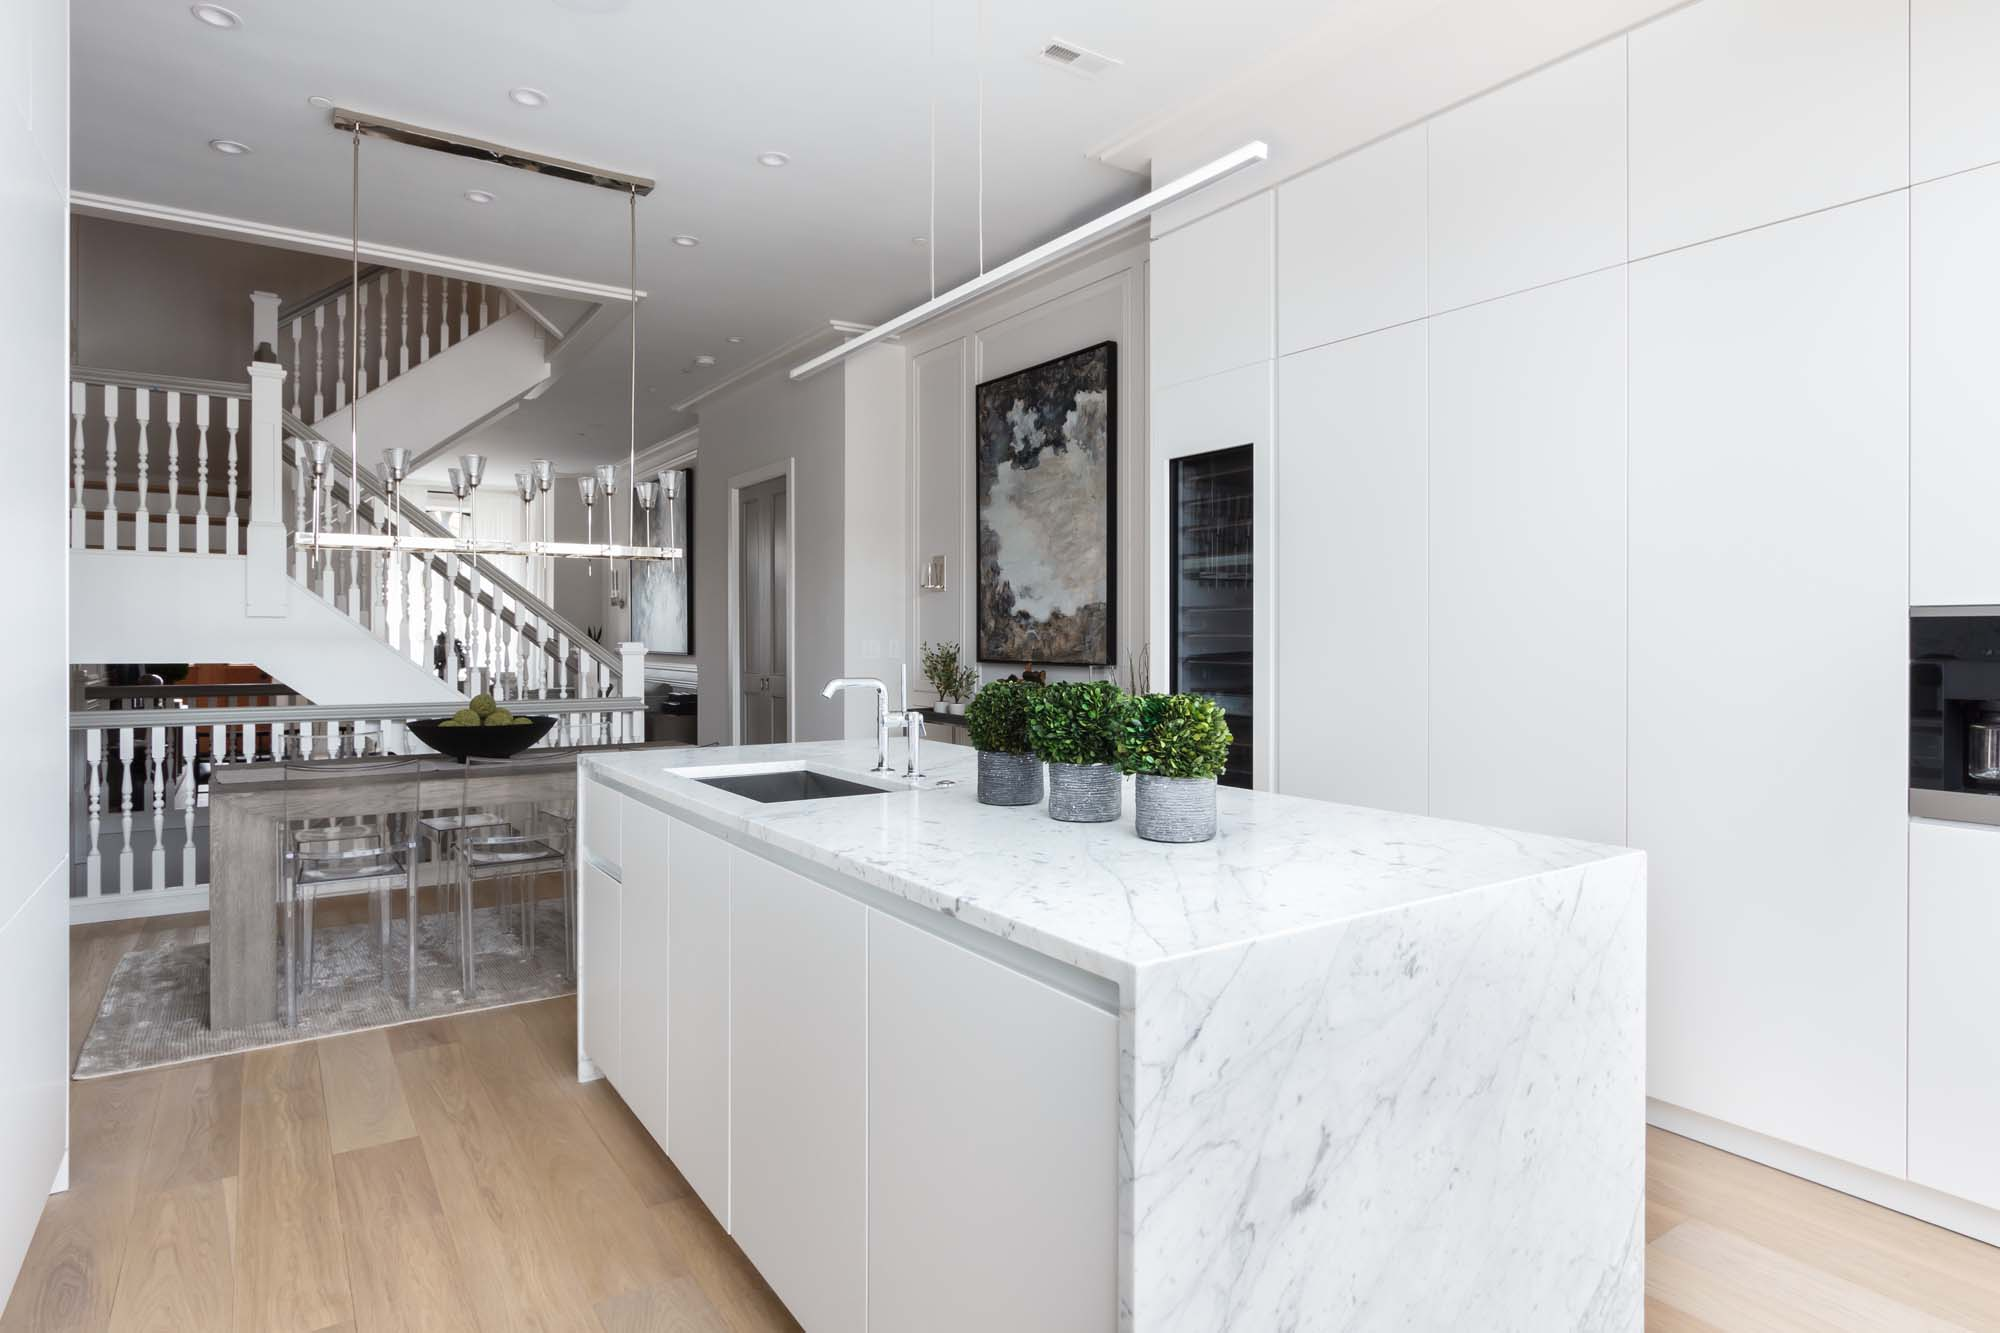 Five Exquisite Townhomes with a Twist Debut on Capitol Hill